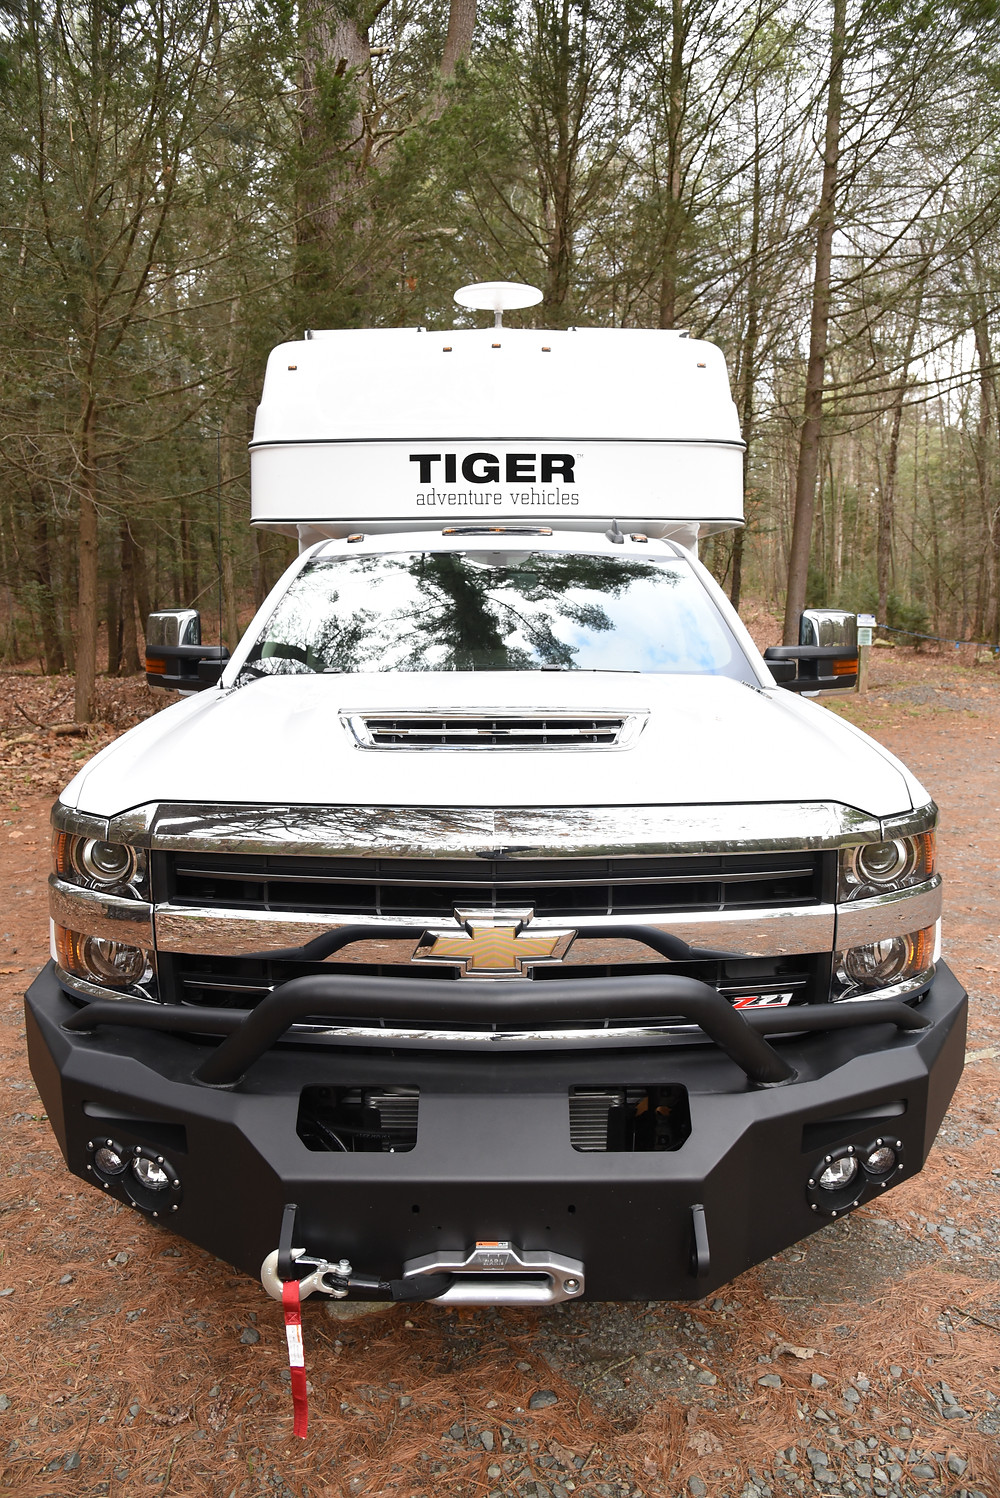 Tiger Adventure Vehicle